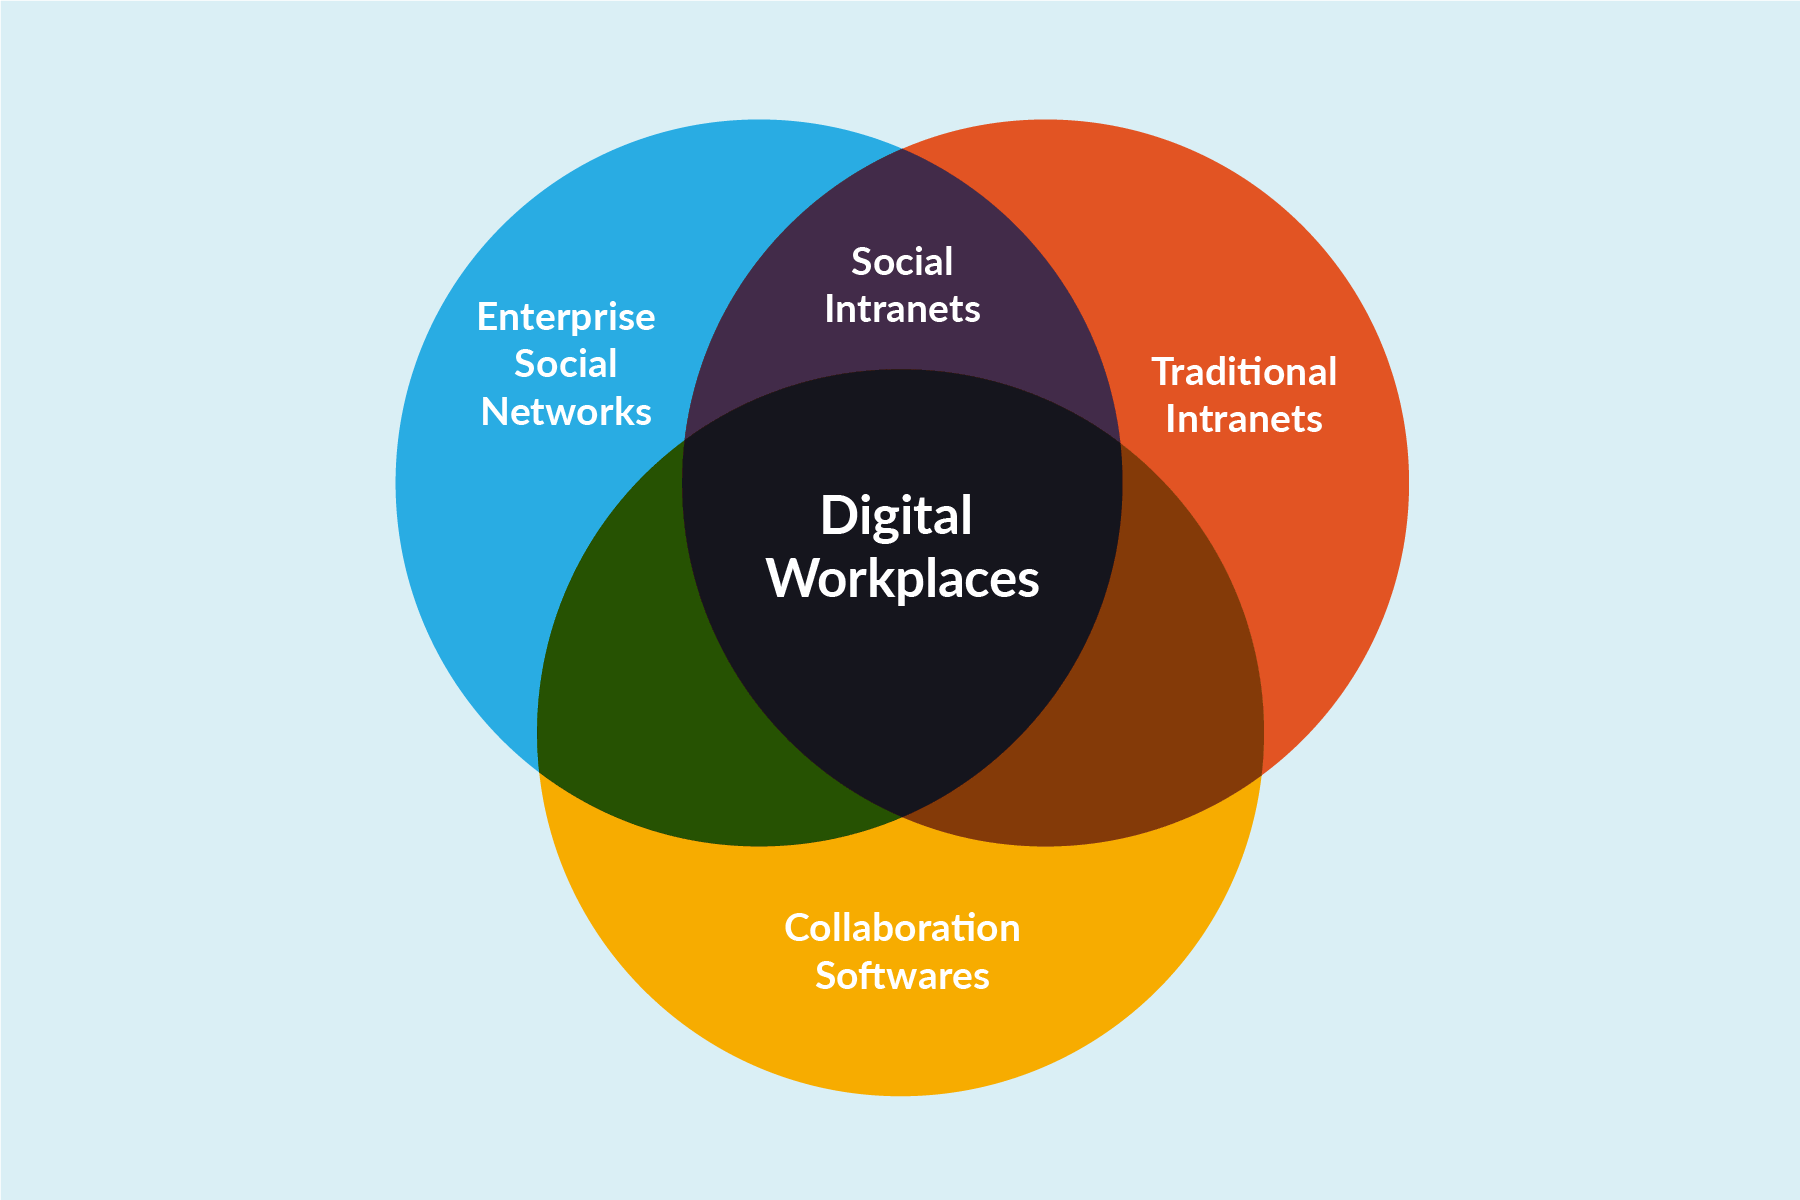 digital-workplace-rather-intranet (1).png